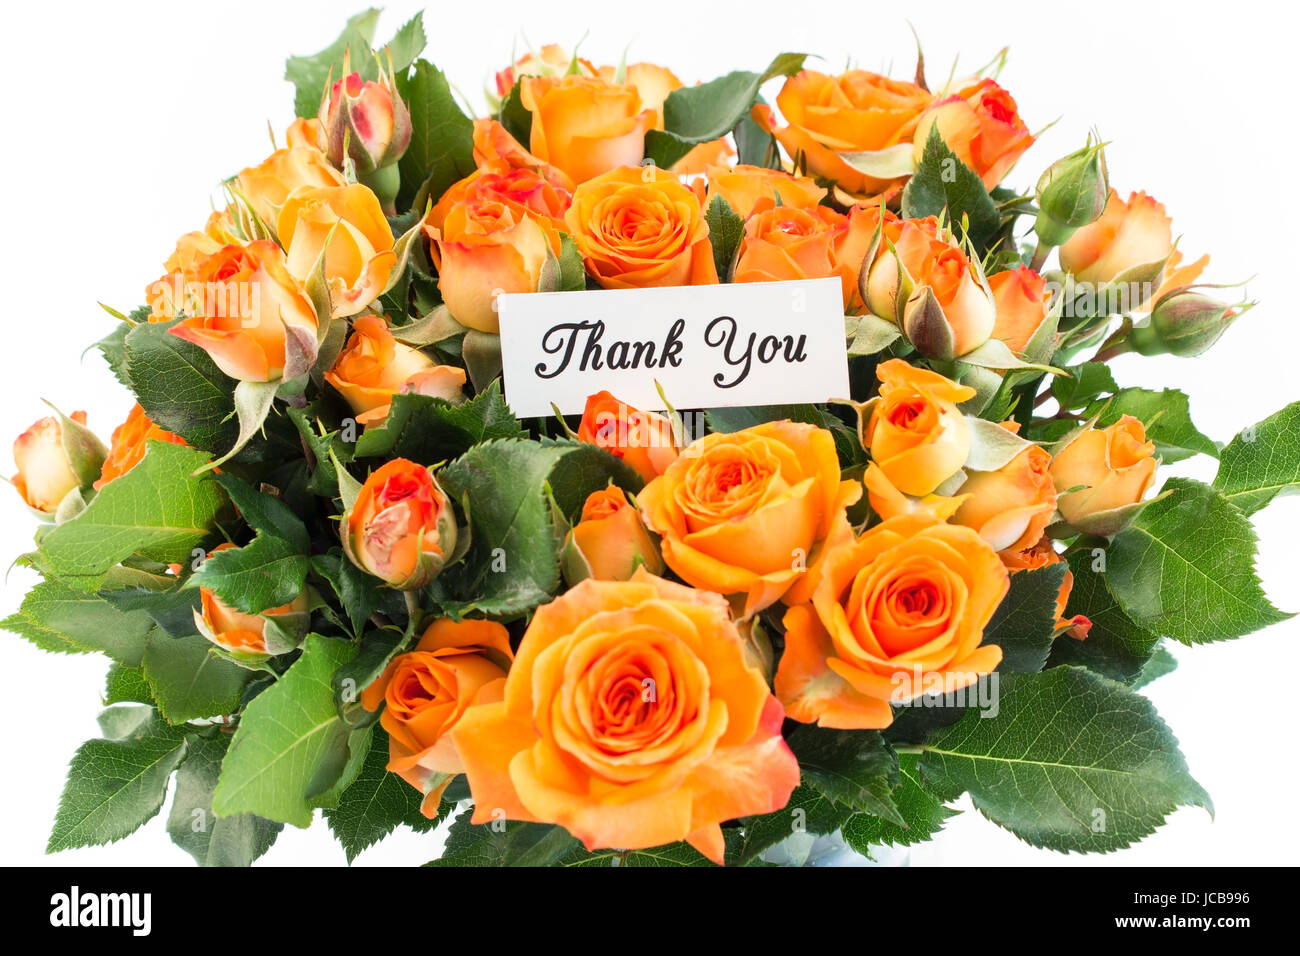 Thank You Card with Bouquet of Orange Roses on a White Background ...